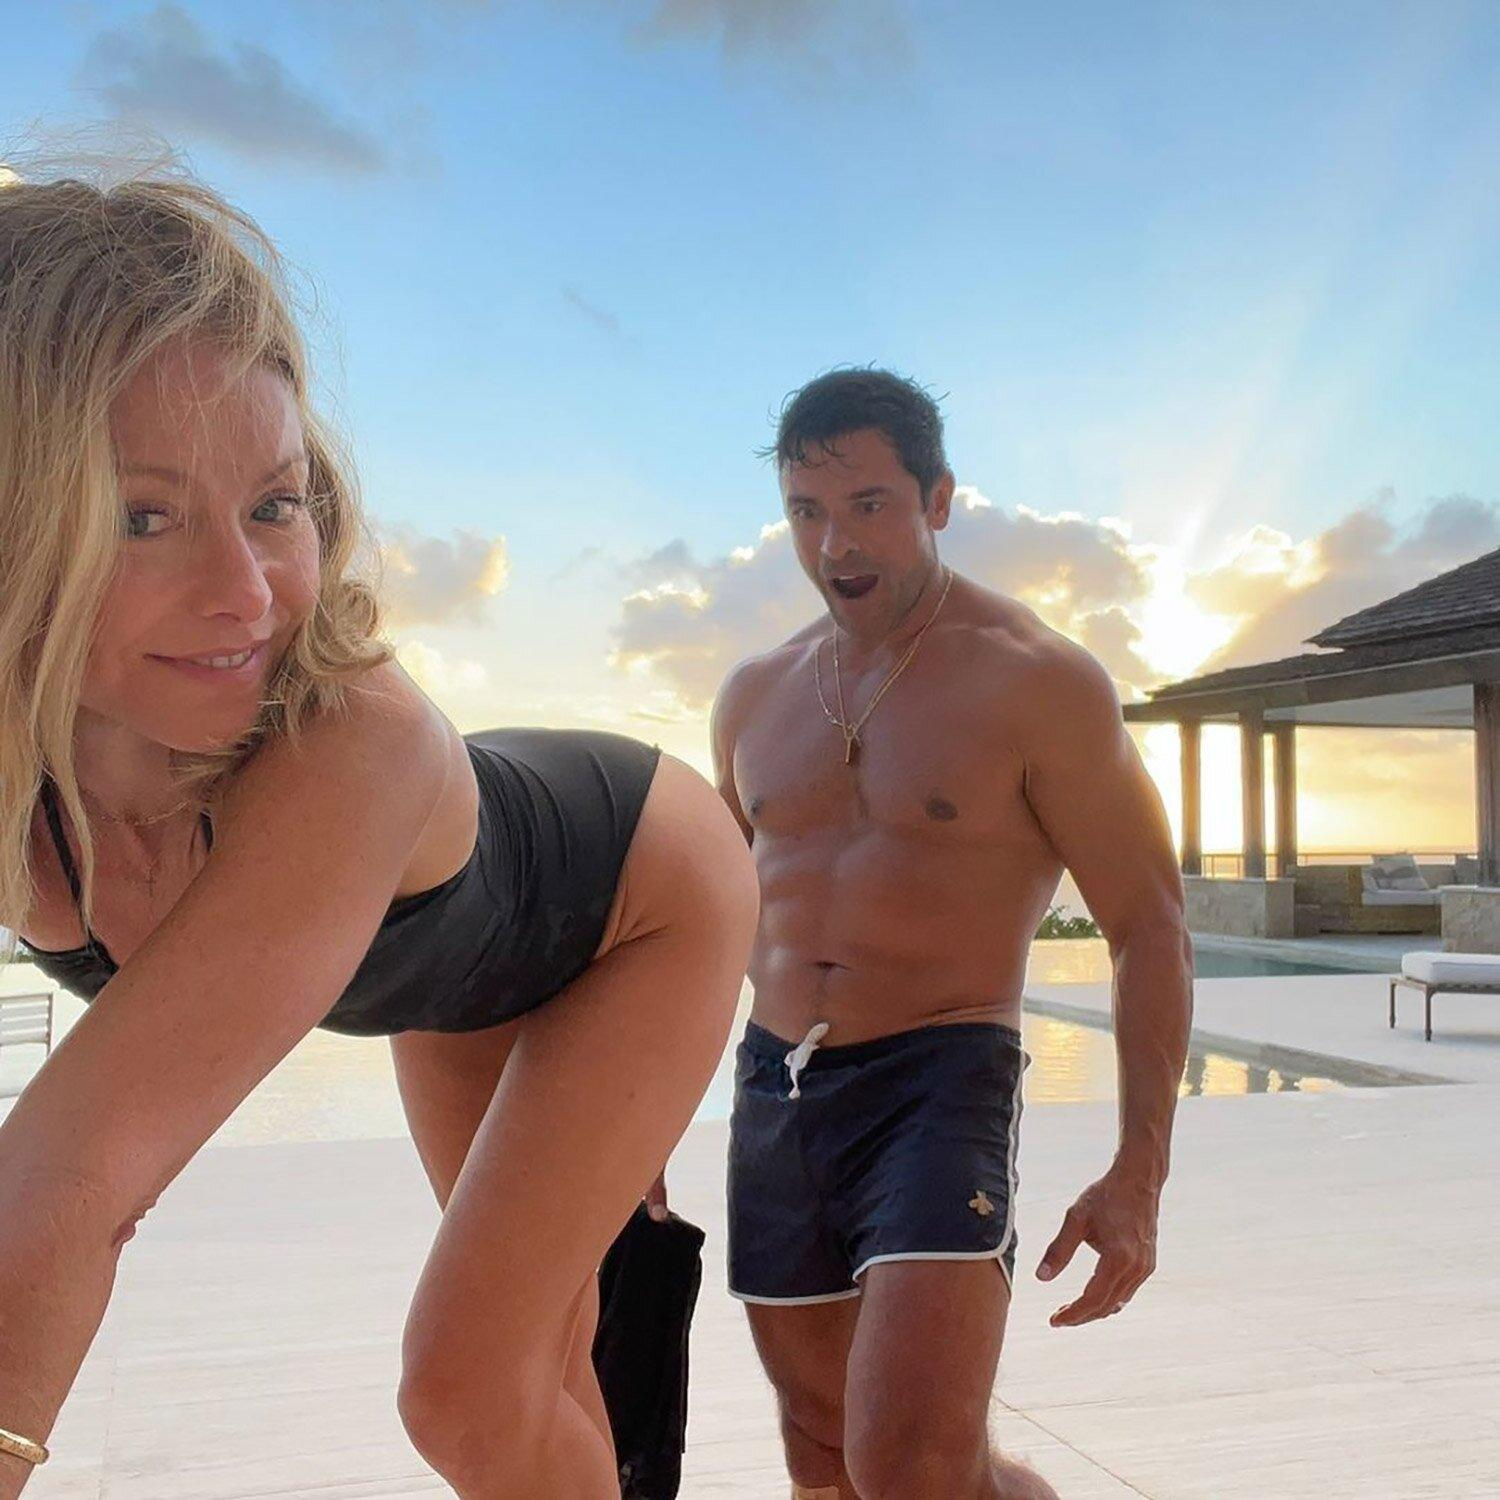 Kelly Ripa Gives Husband Mark Consuelos an Eyeful in Cheeky Instagram Post: 'The End Is in Sight'